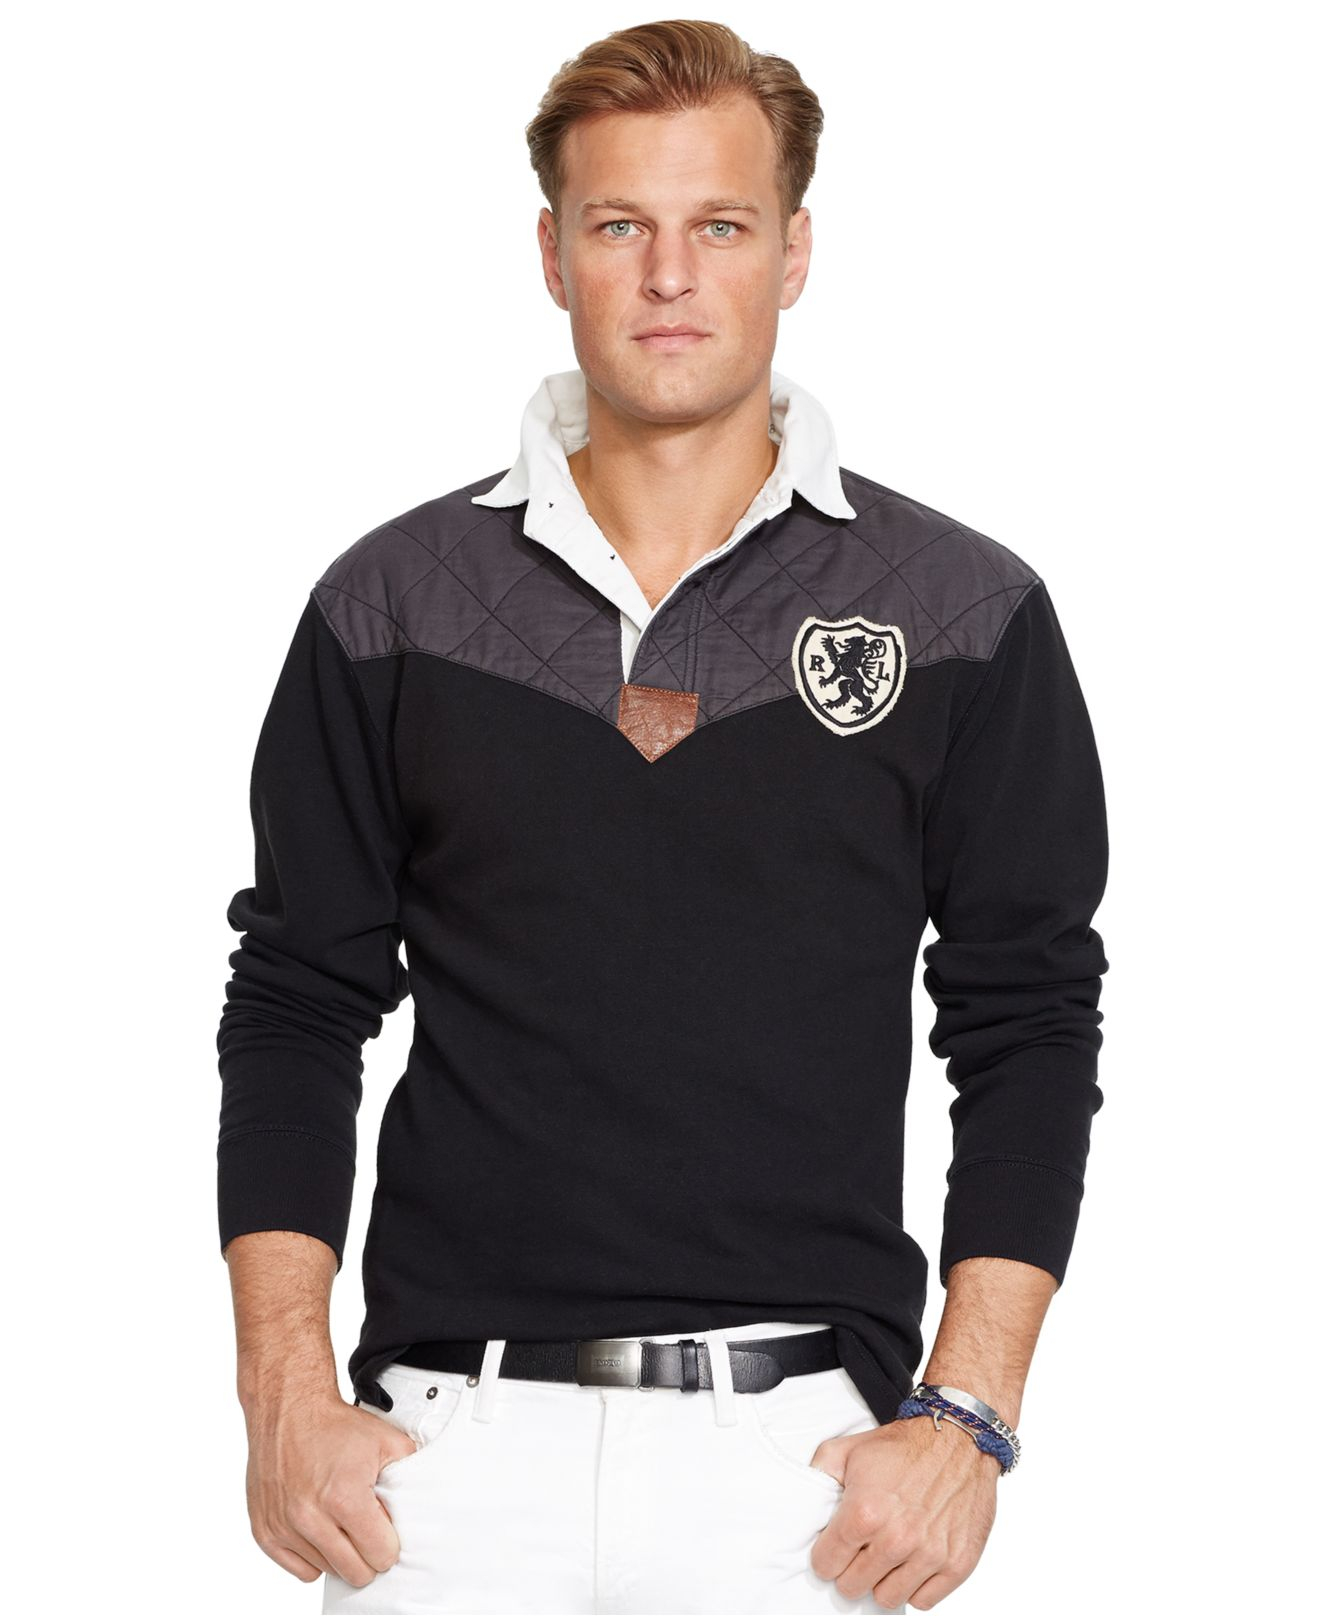 Lyst polo ralph lauren big and tall vintage rugby jersey for Big and tall polo rugby shirts